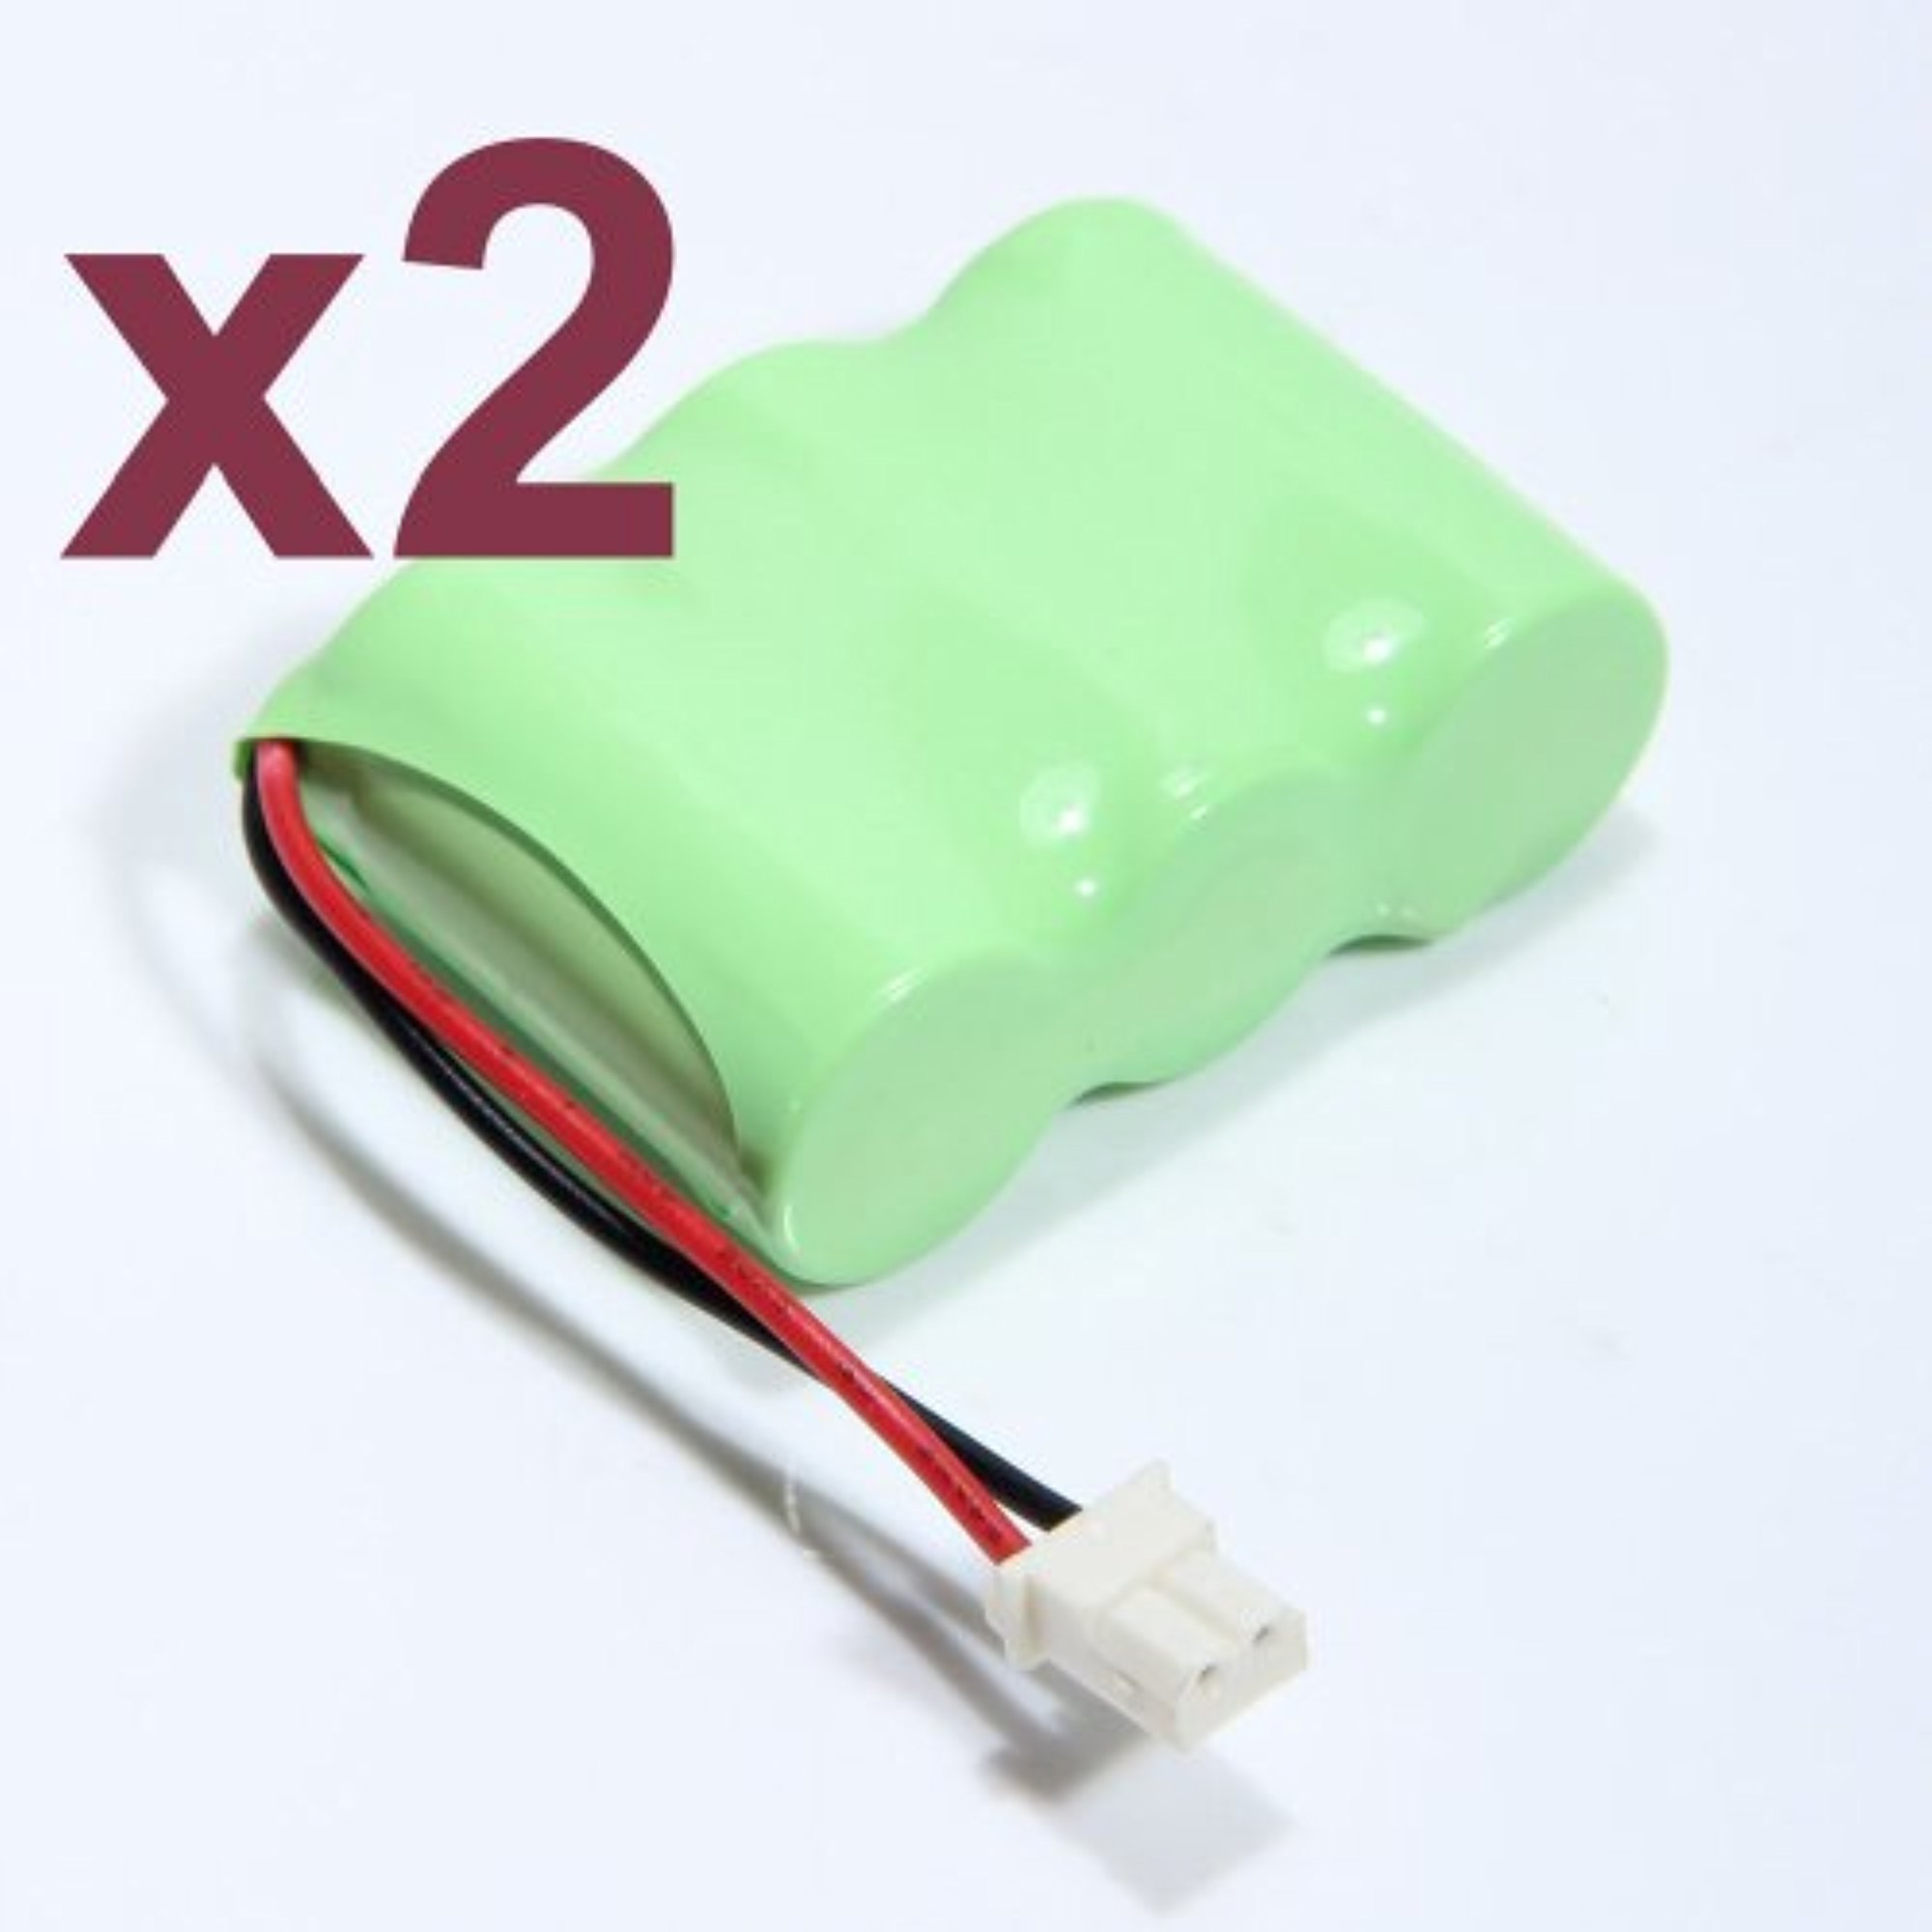 2x Cordless Phone 400mAh 3.6V Battery for Vtech BT-17333, BT-27333, CS2111, 01839